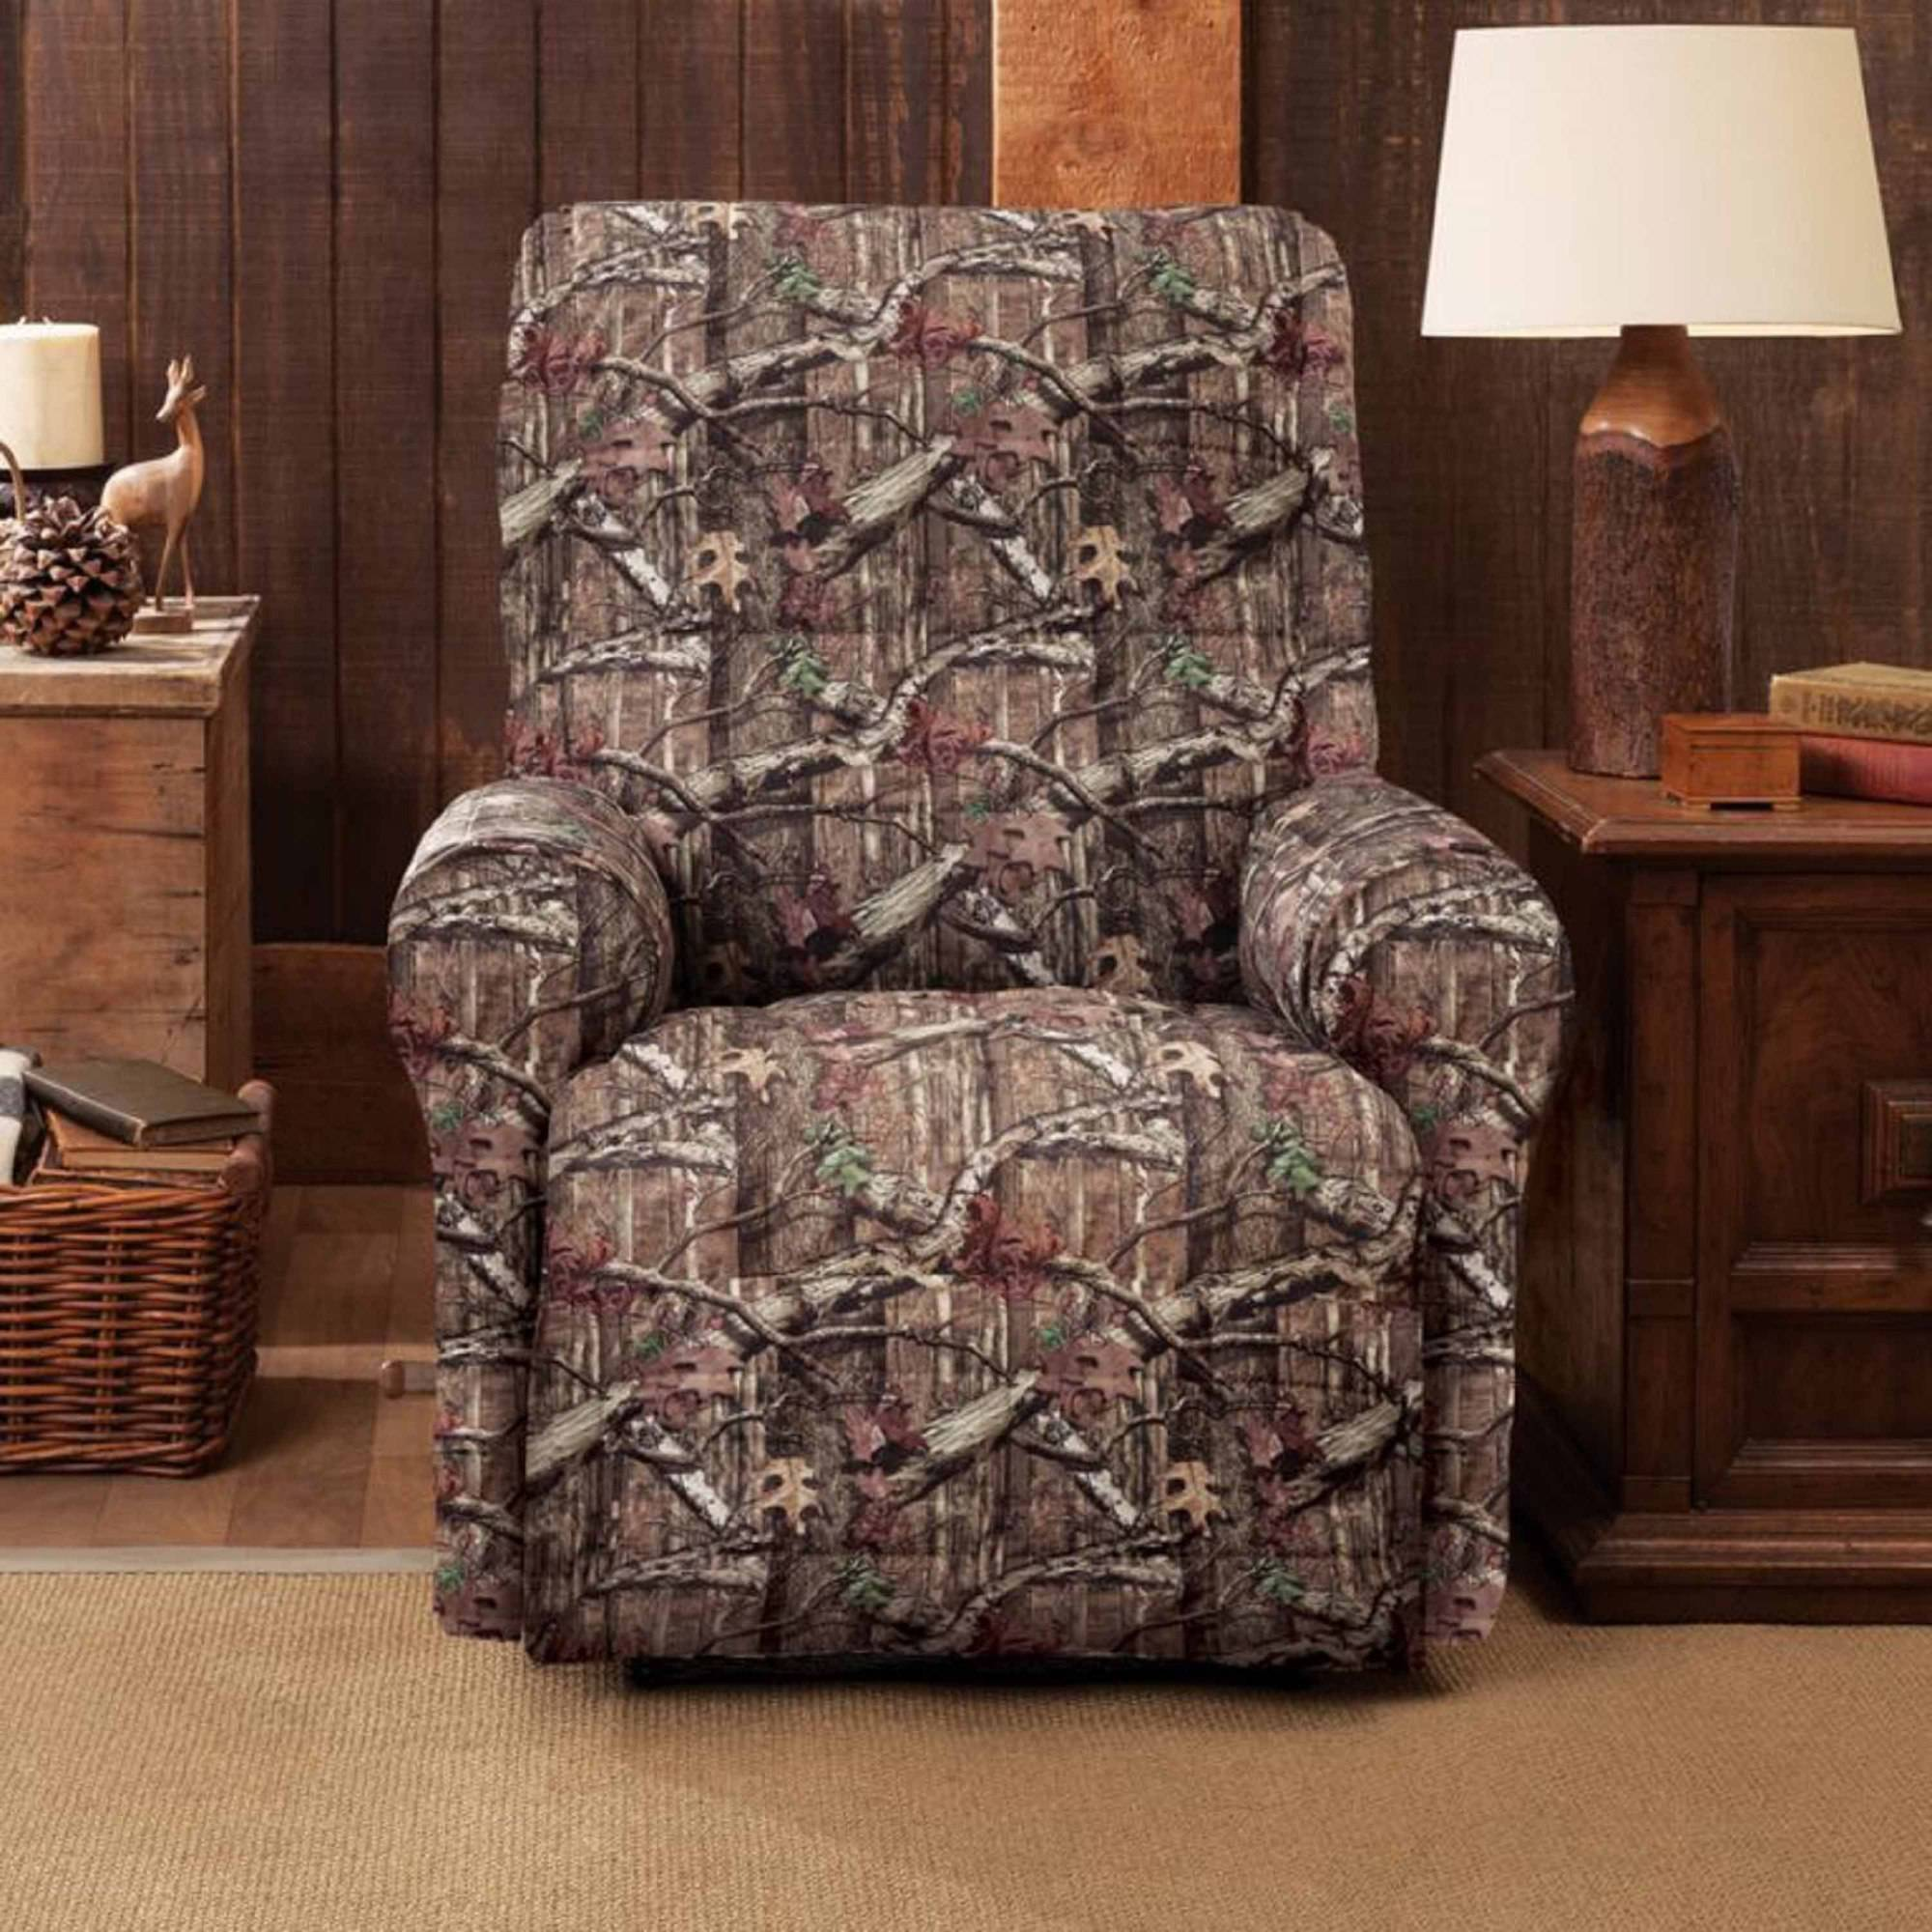 furniture mocha gallery reclining couch couches camo fabric sofa camouflage set sectional and